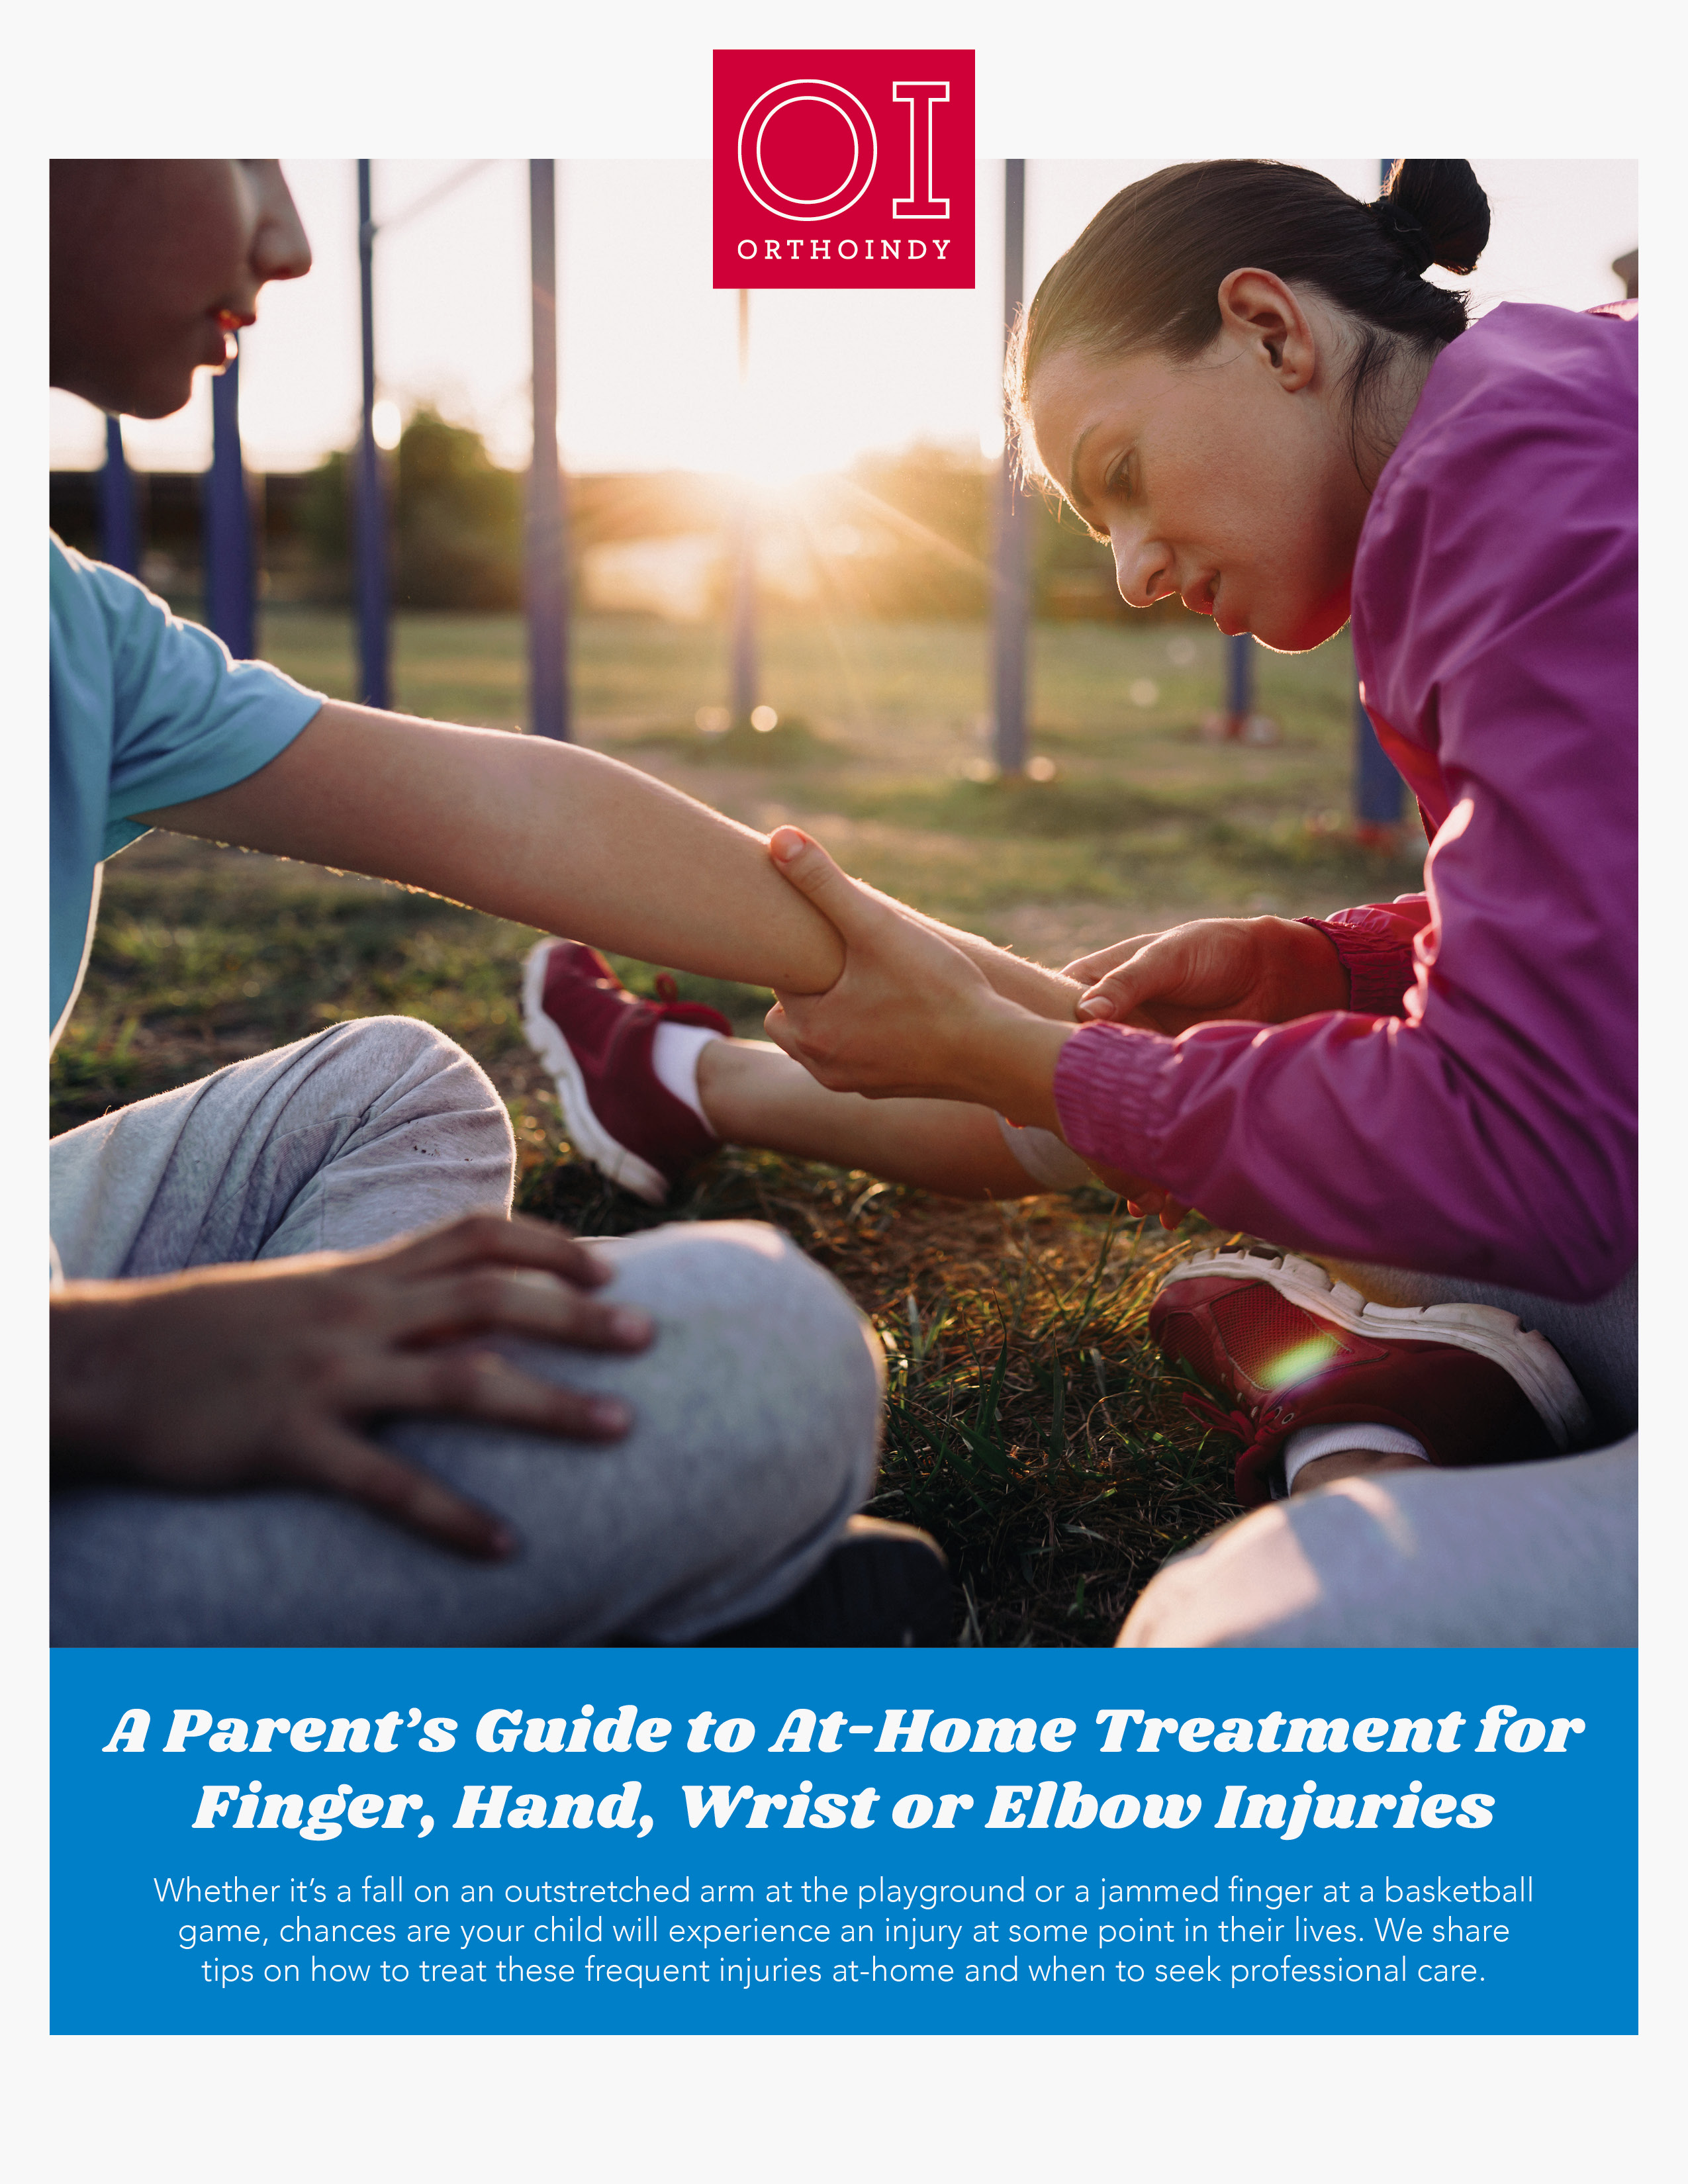 Parents Guide to Hand Injuries